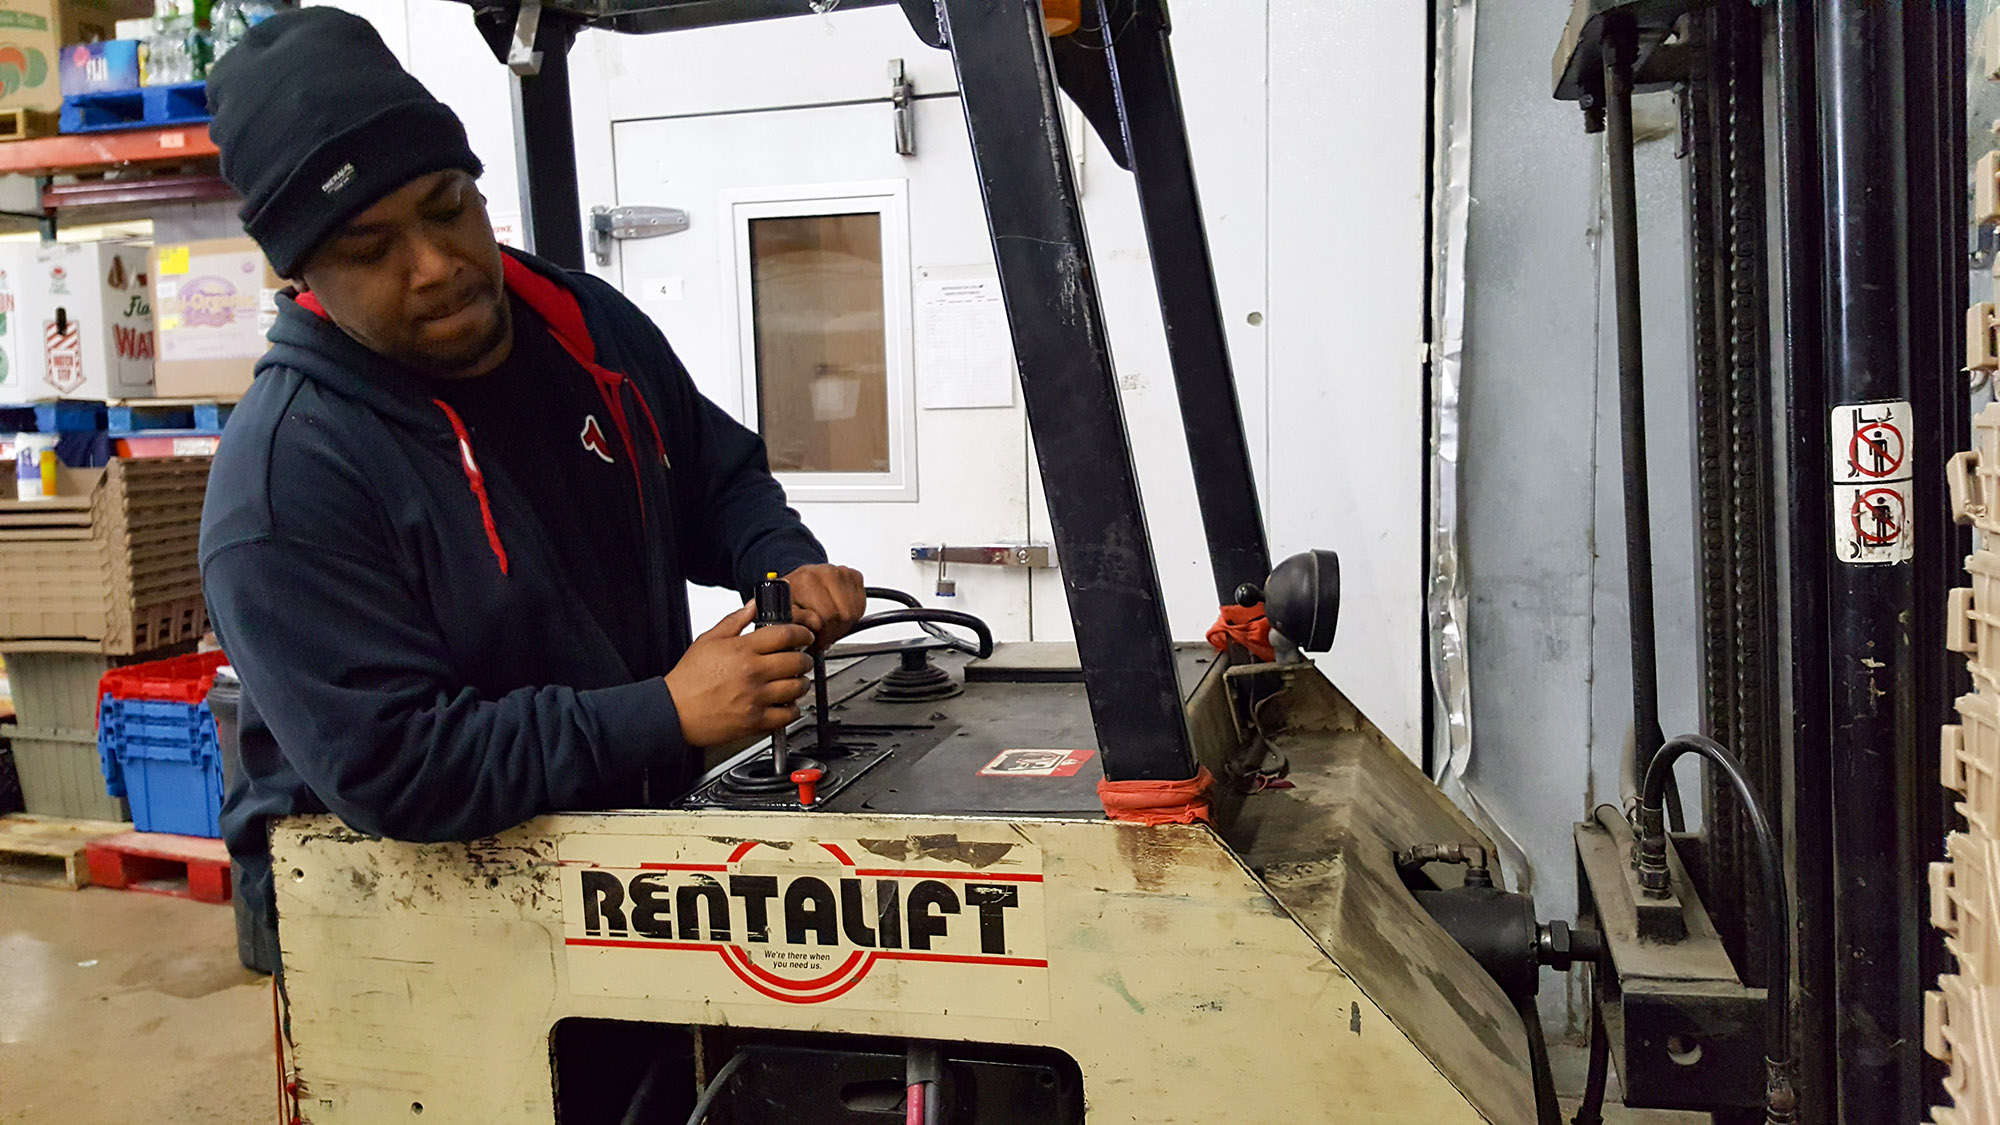 Anthony assisting in CUMAC's warehouse after his forklift training and certification